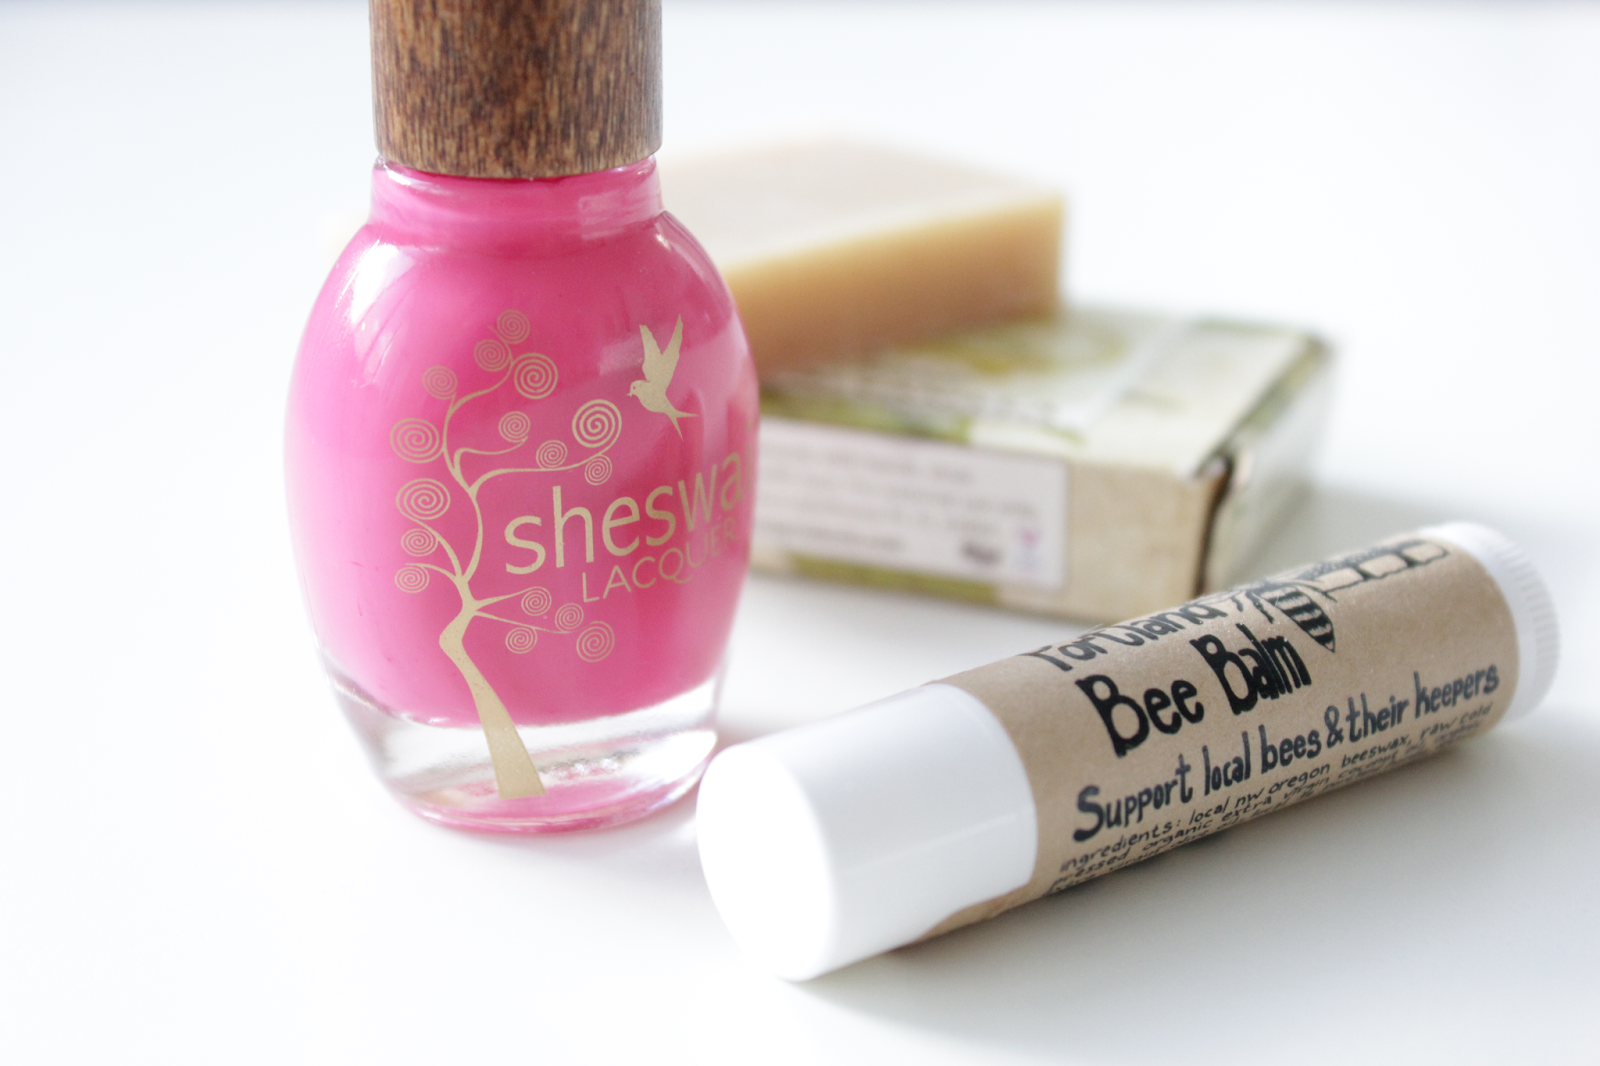 sheswai nail lacquer and portland bee balm via that's just